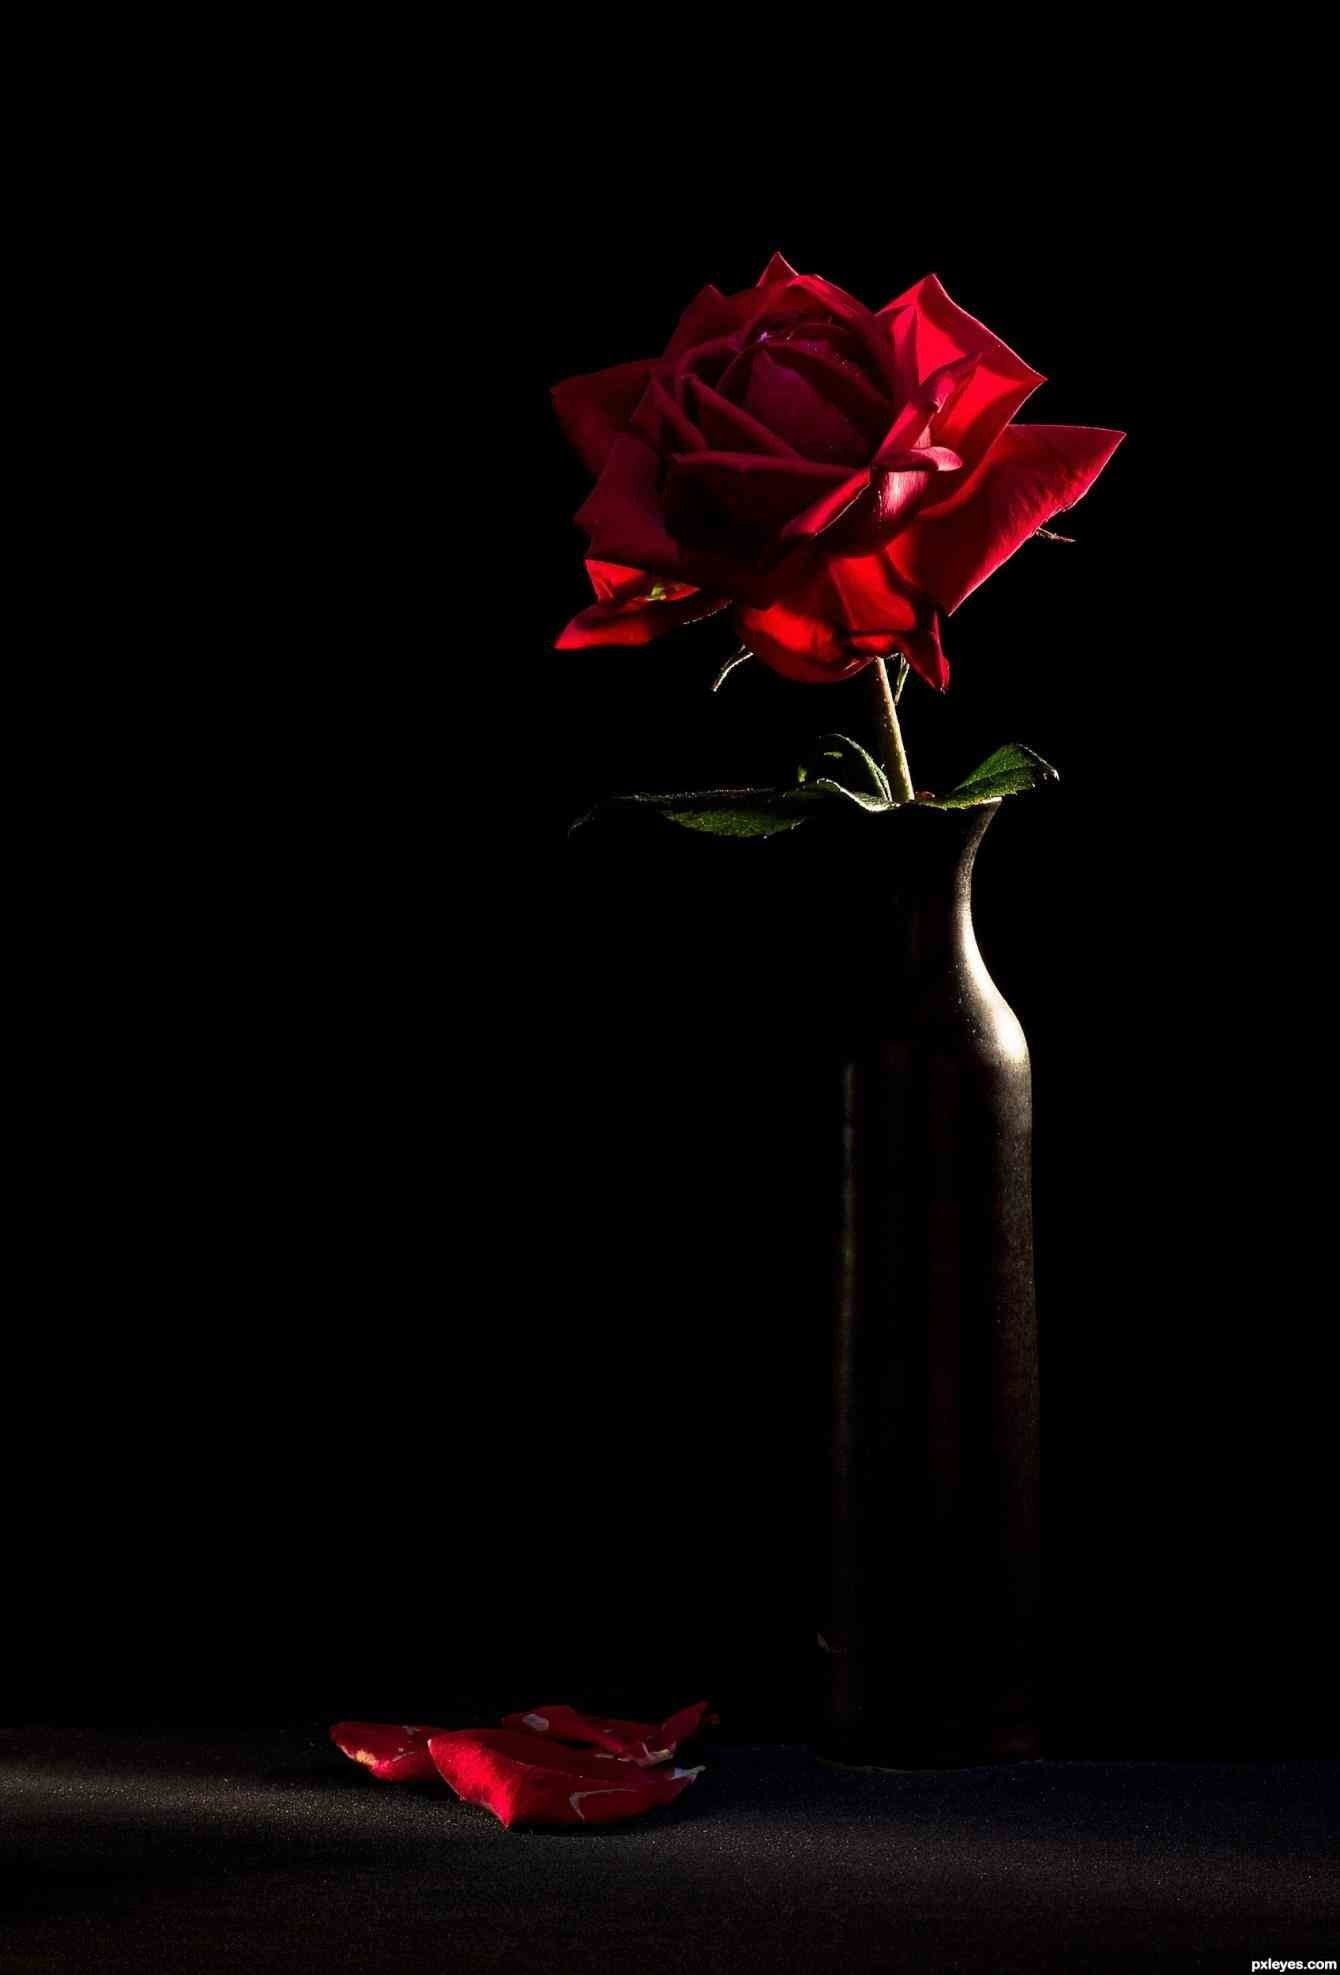 Iphone Lock Screen Red Rose Wallpaper Join now to share and explore tons of collections of awesome wallpapers. iphone lock screen red rose wallpaper